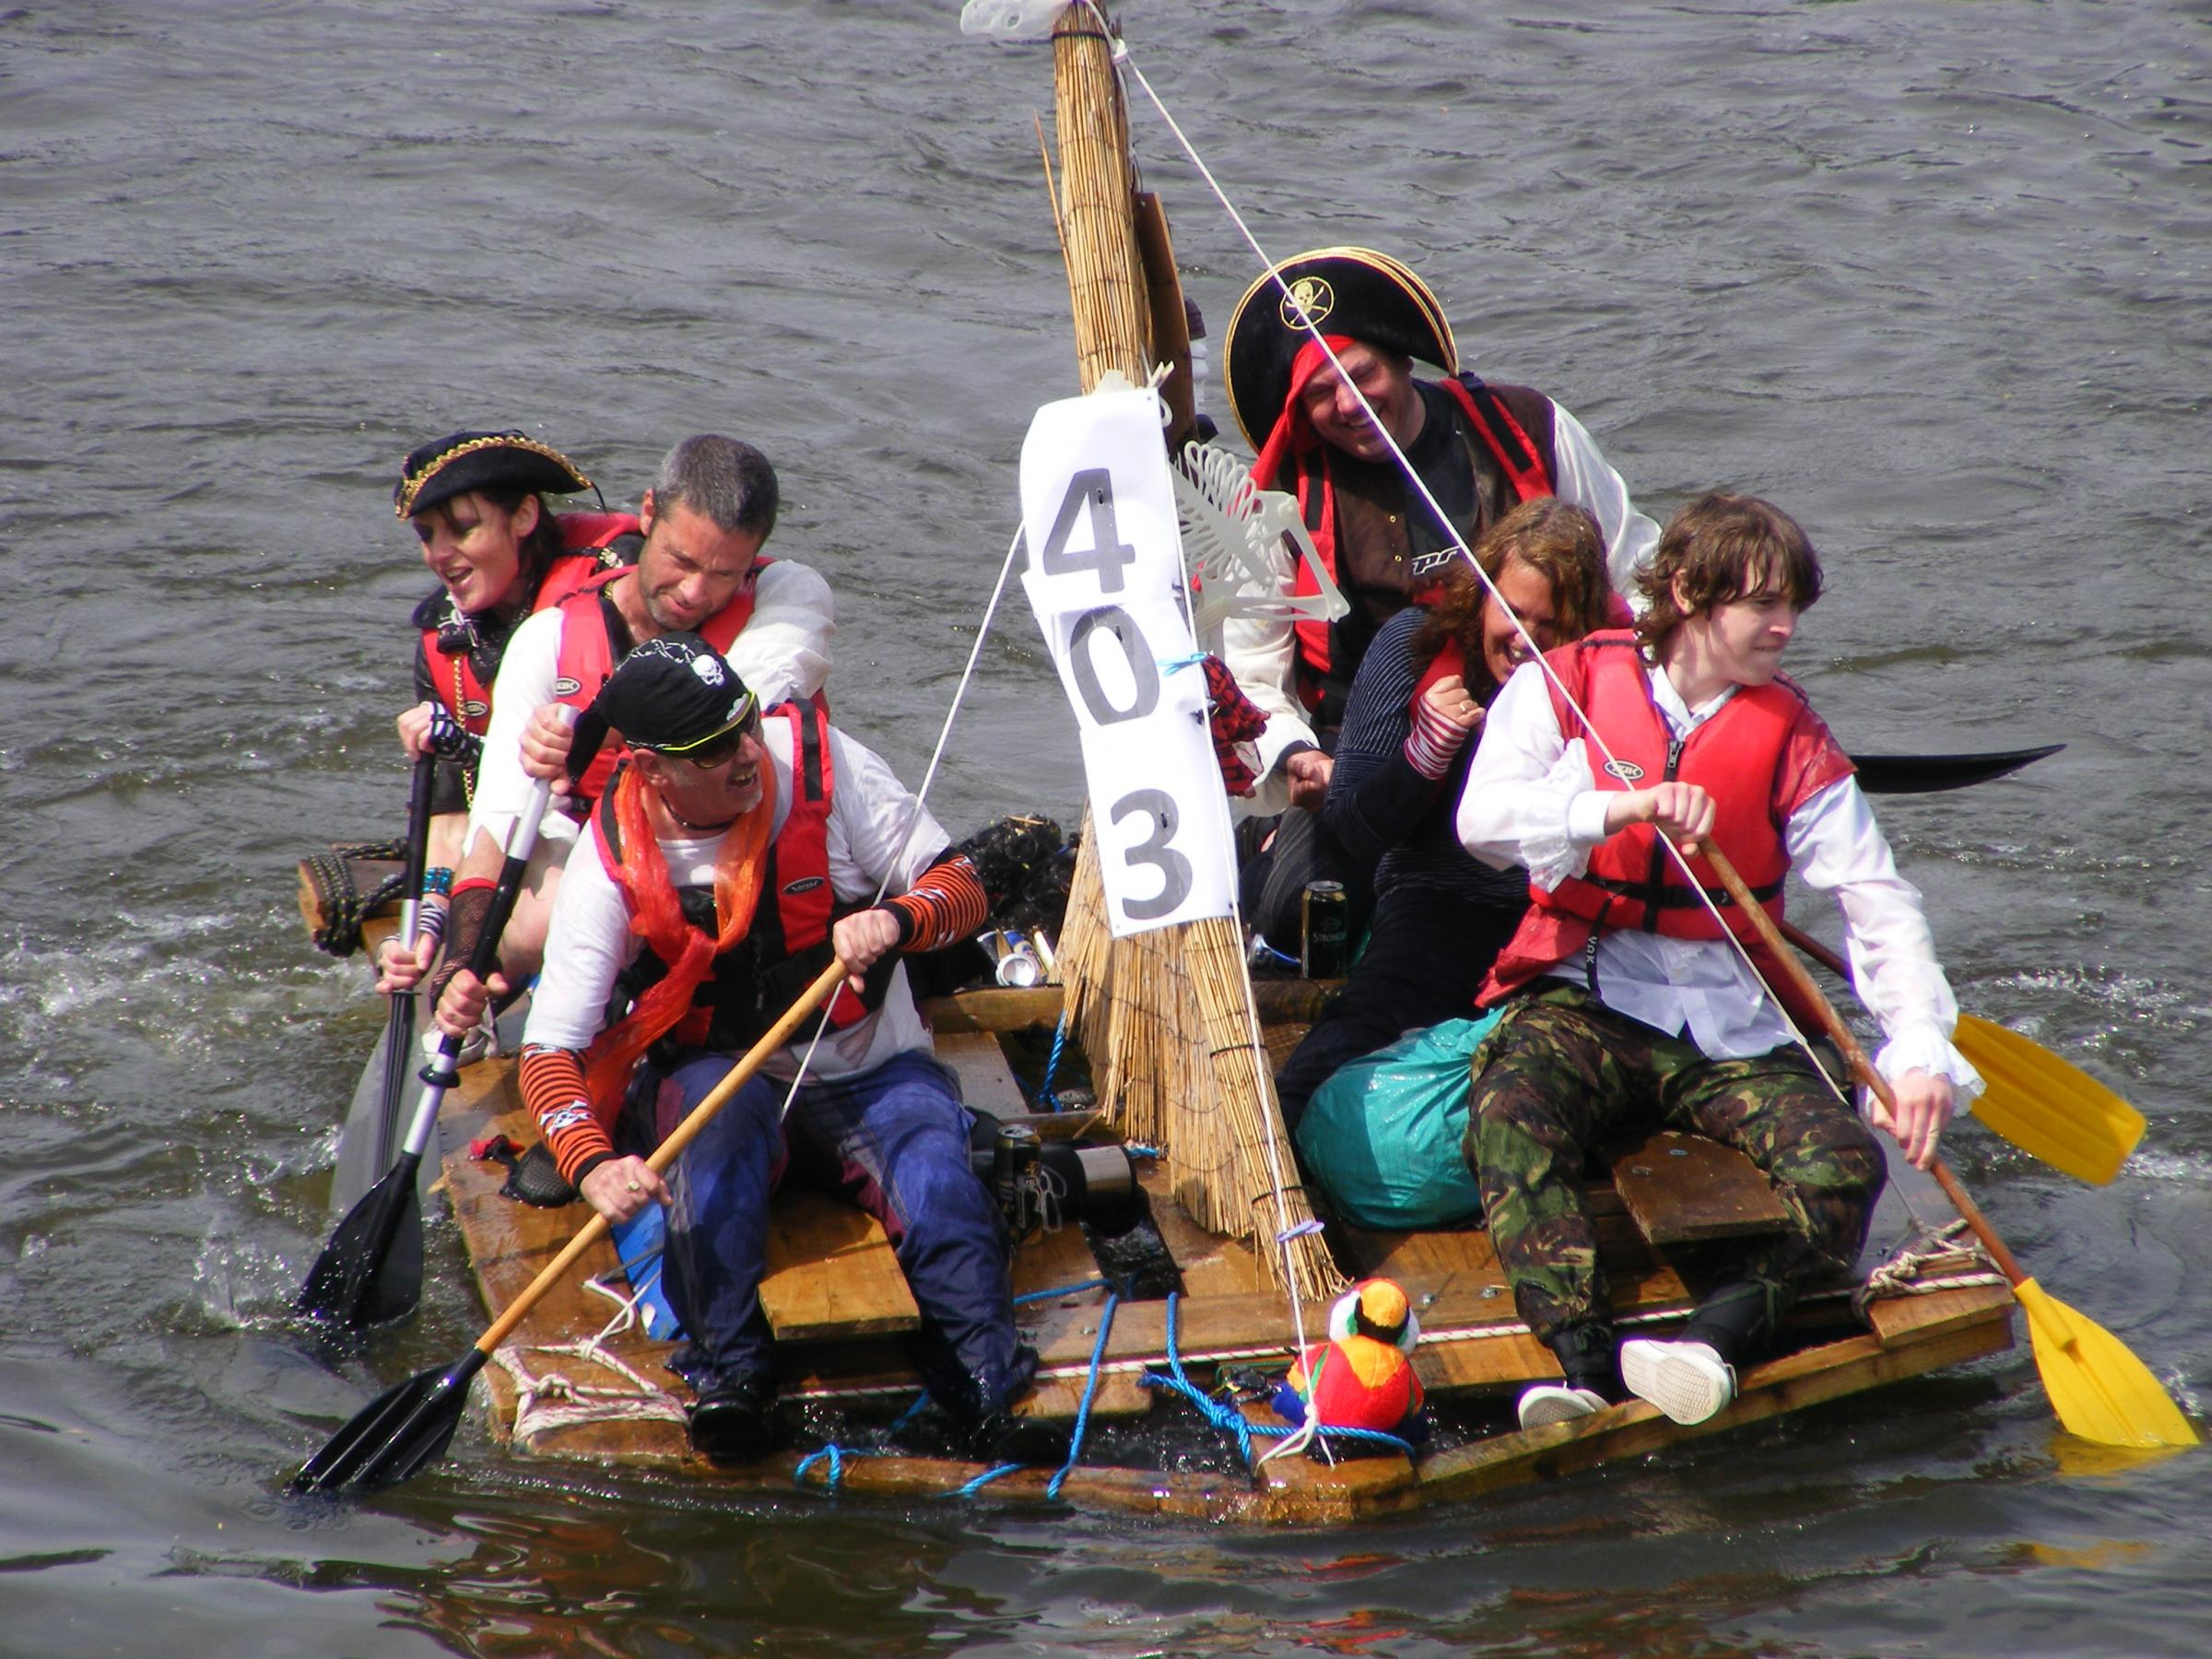 Teams take to the water for annual Lions raft race